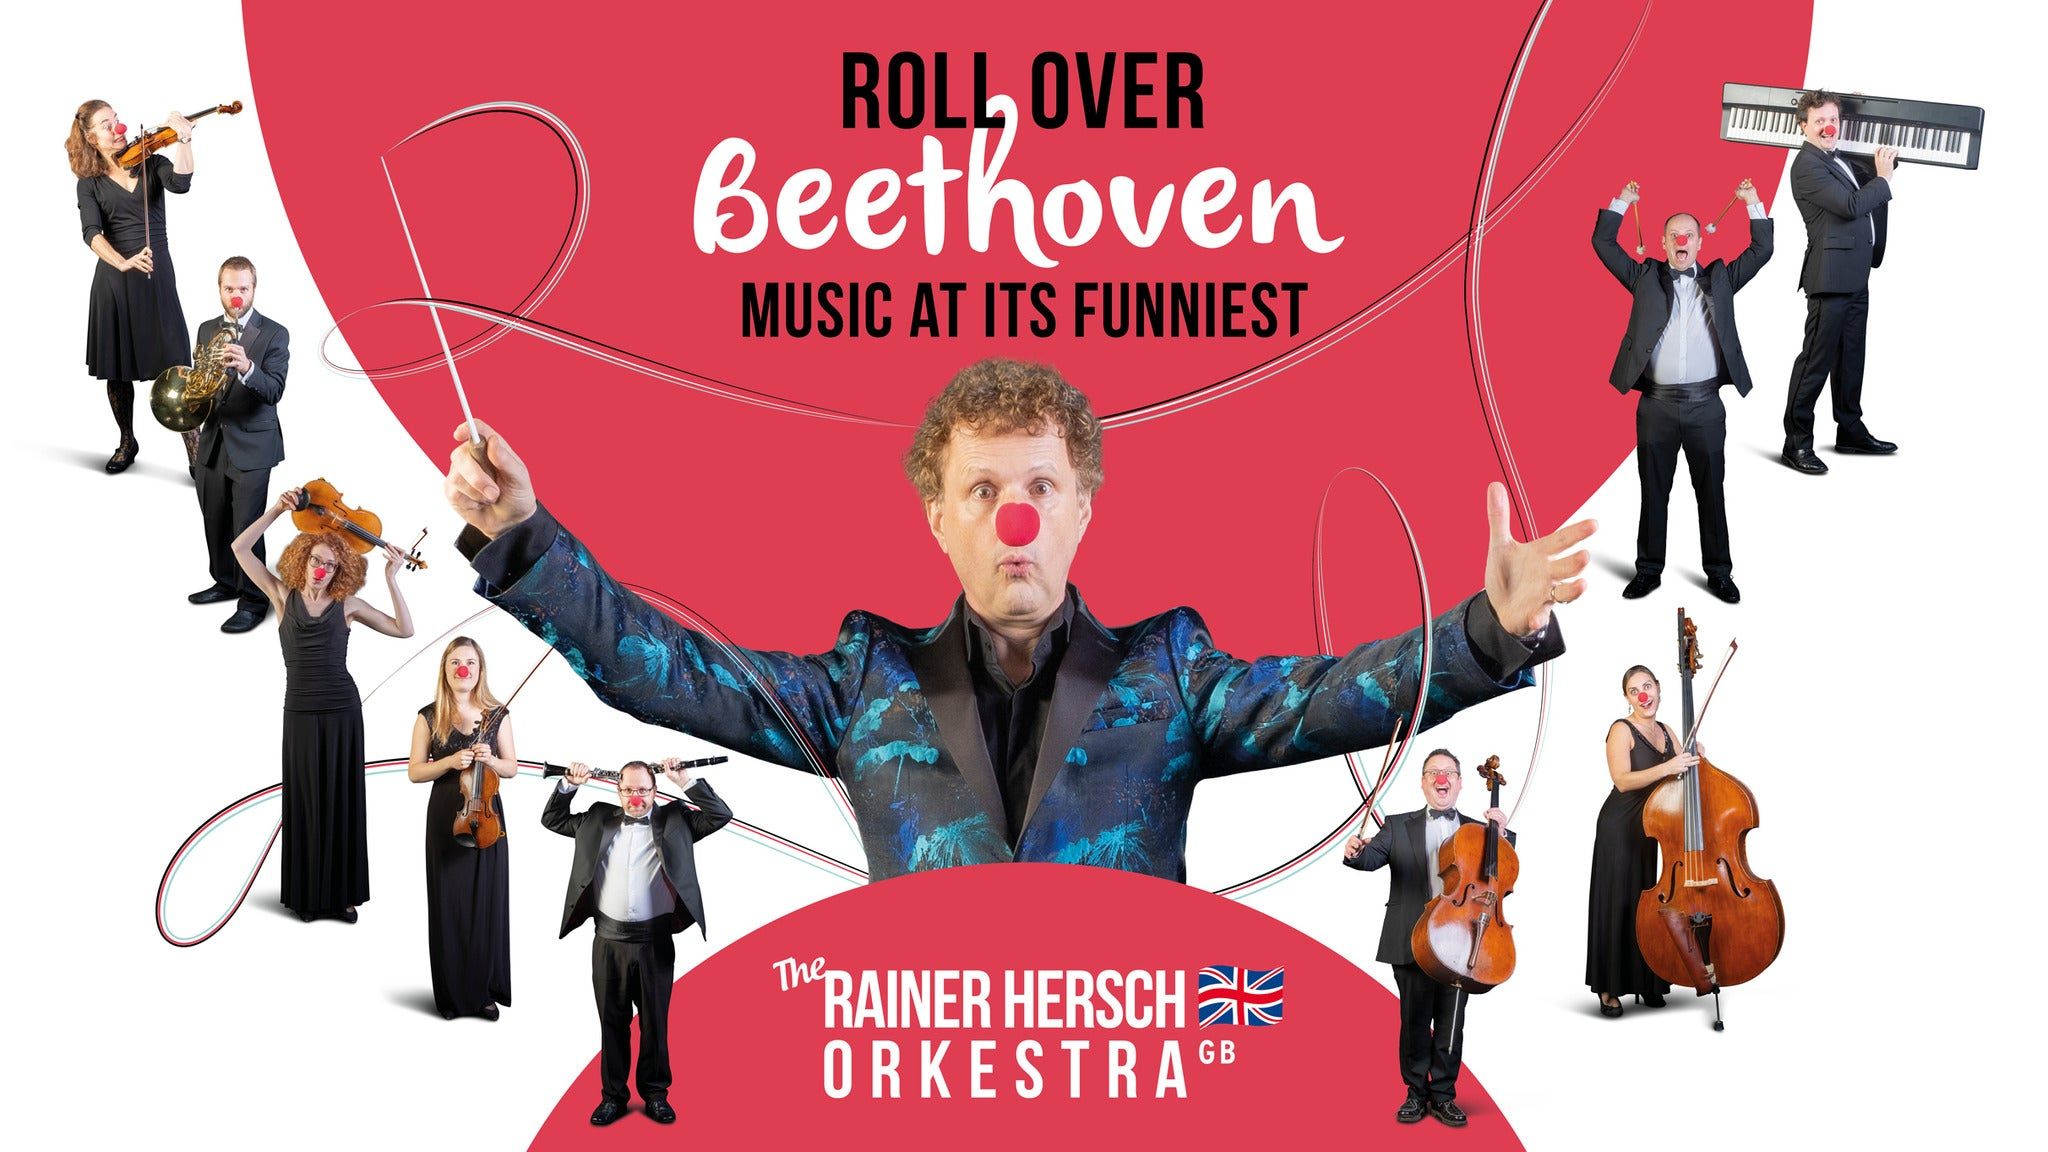 The Rainer Hersch Orkestra: roll Over Beethoven tickets (Copyright © Ticketmaster)